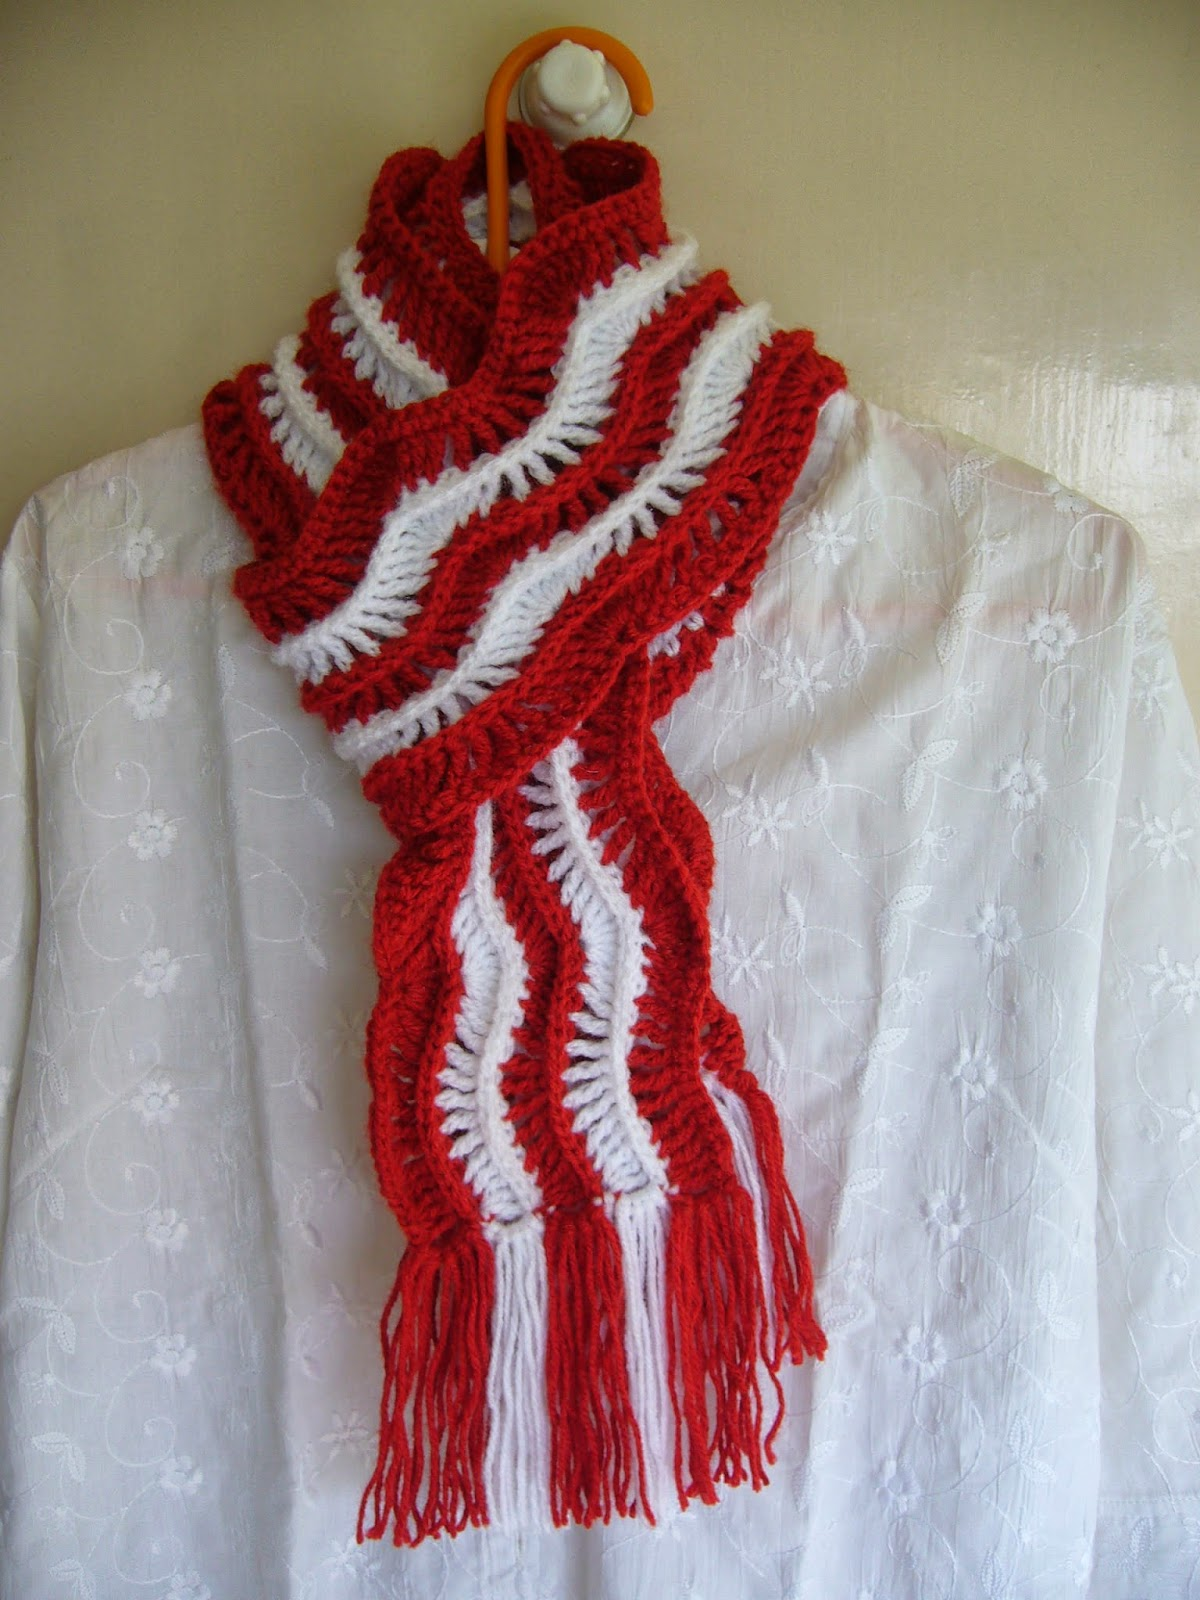 Crochet red and white ripple scarf